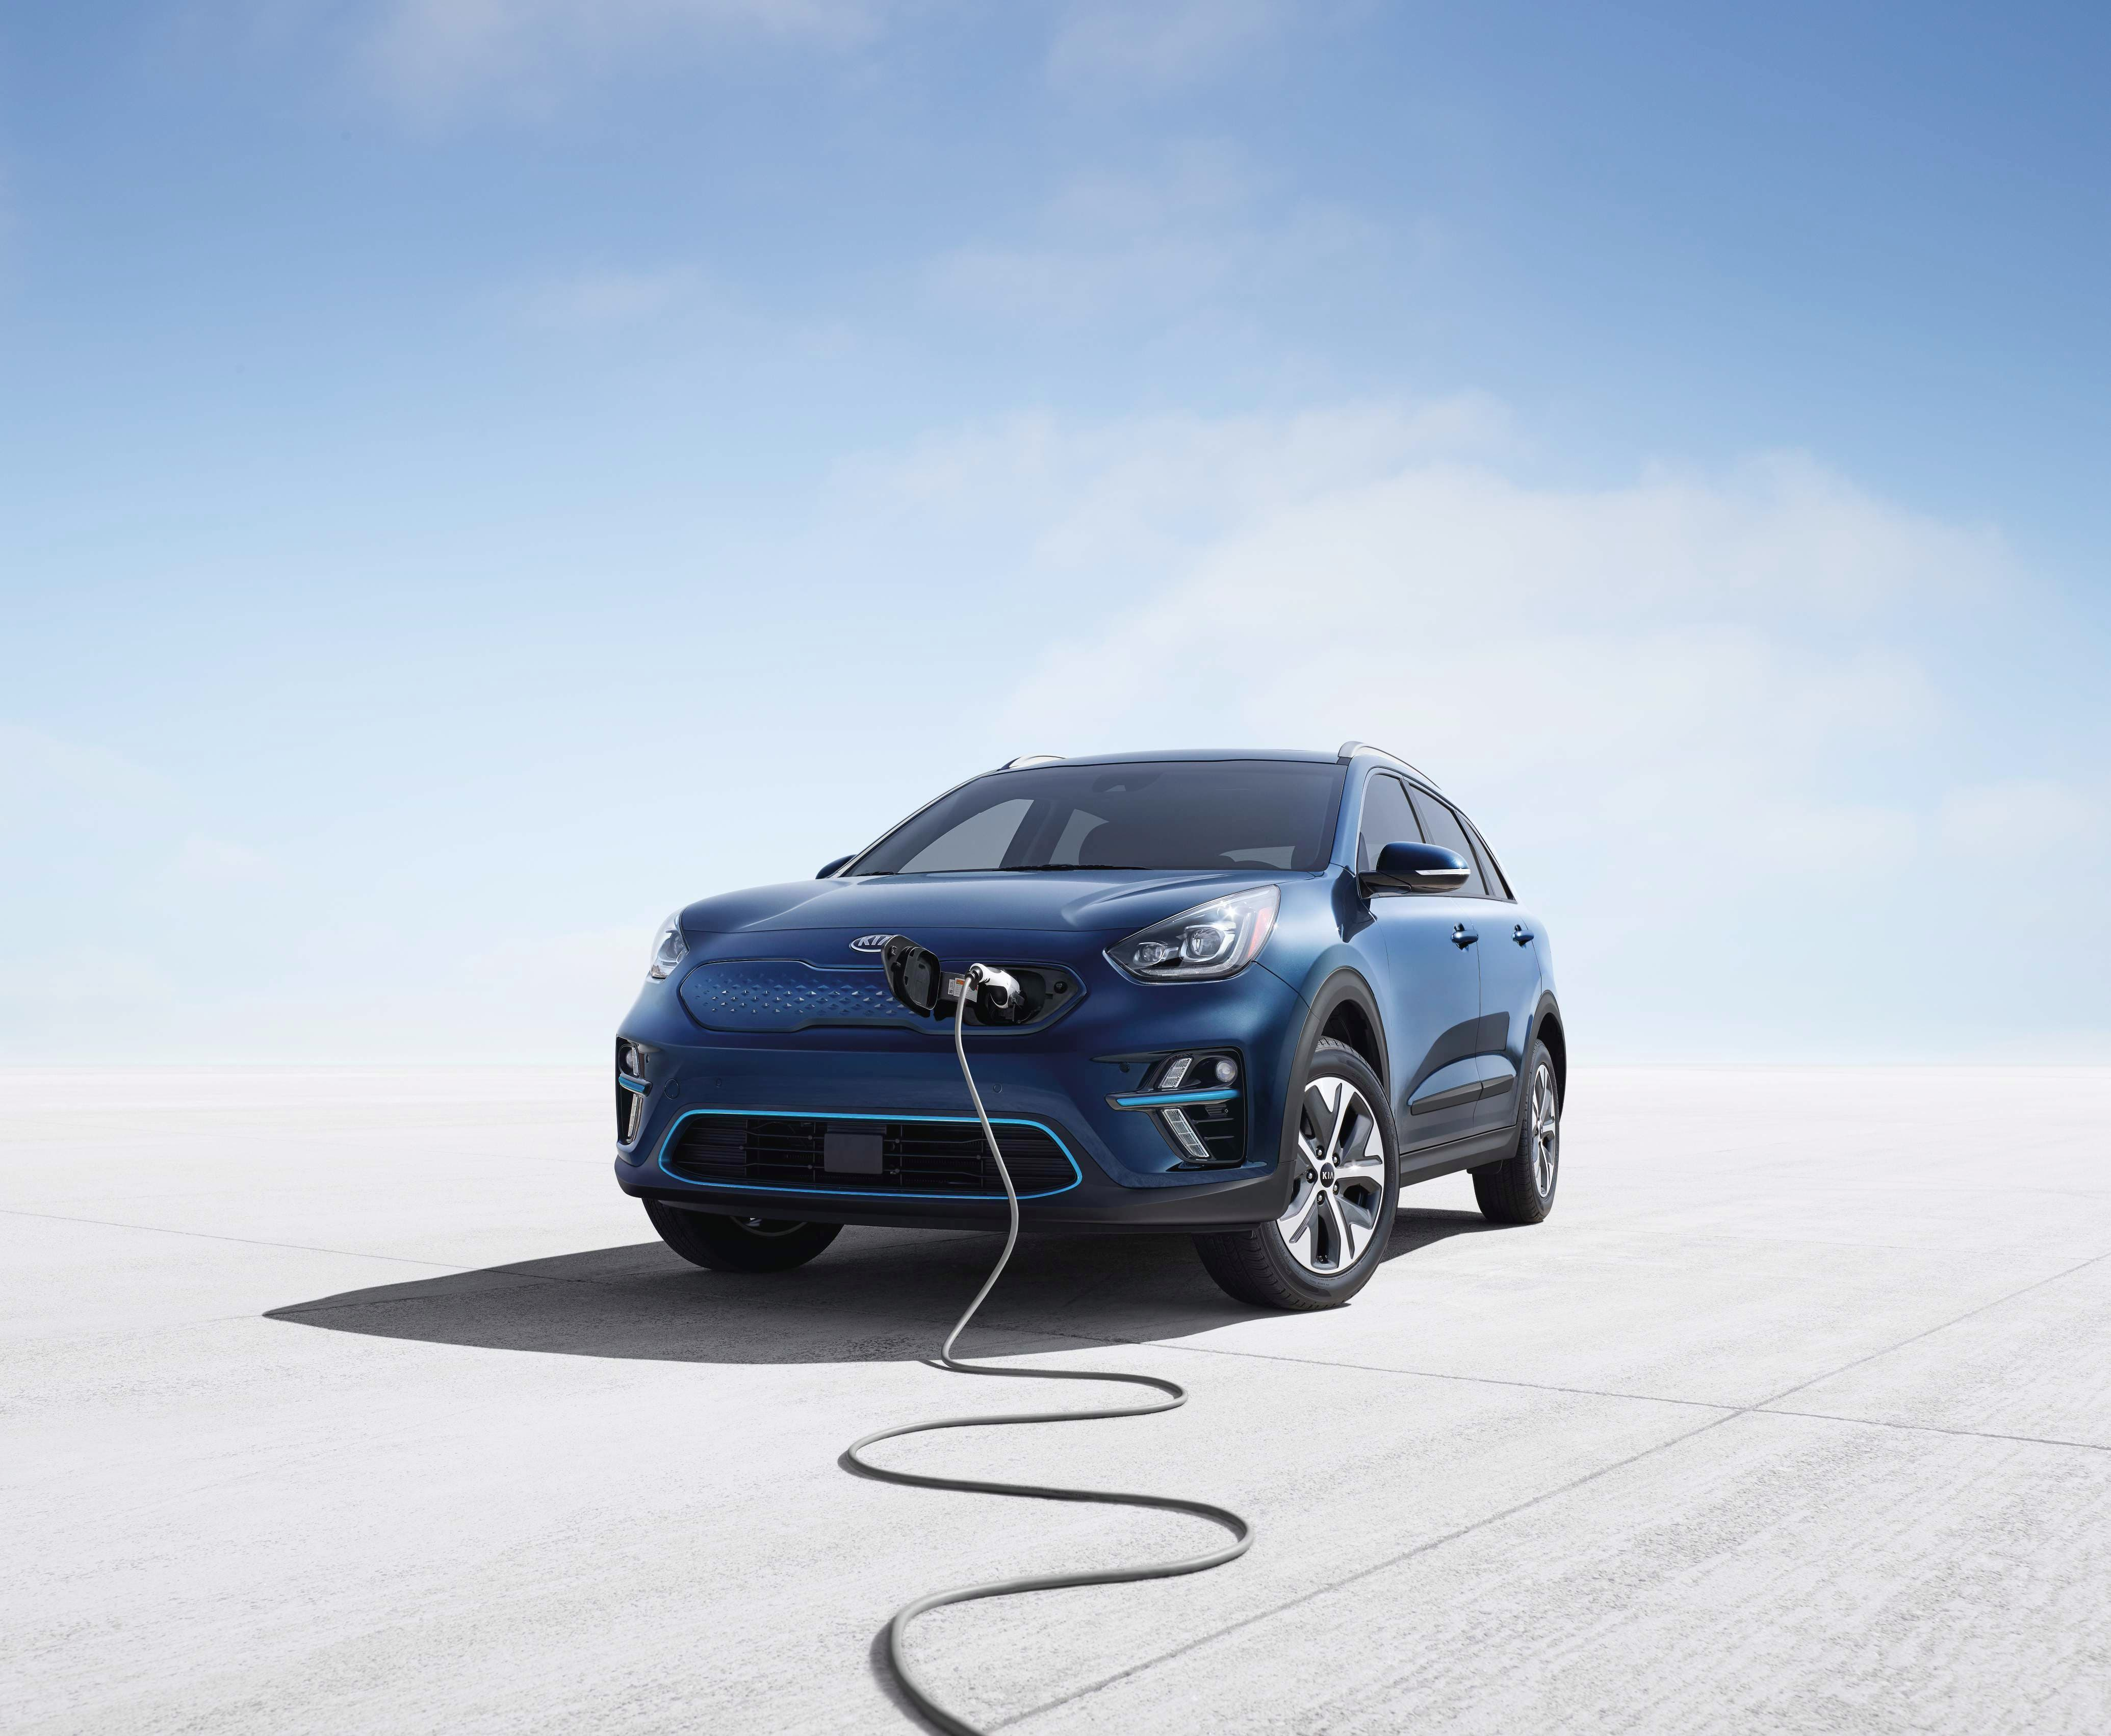 The Niro Ev Will Come With A 64 Kwh Lithium Polymer Battery And An Epa Range Rated At 239 Miles Below Are Rest Of Basic Specifications